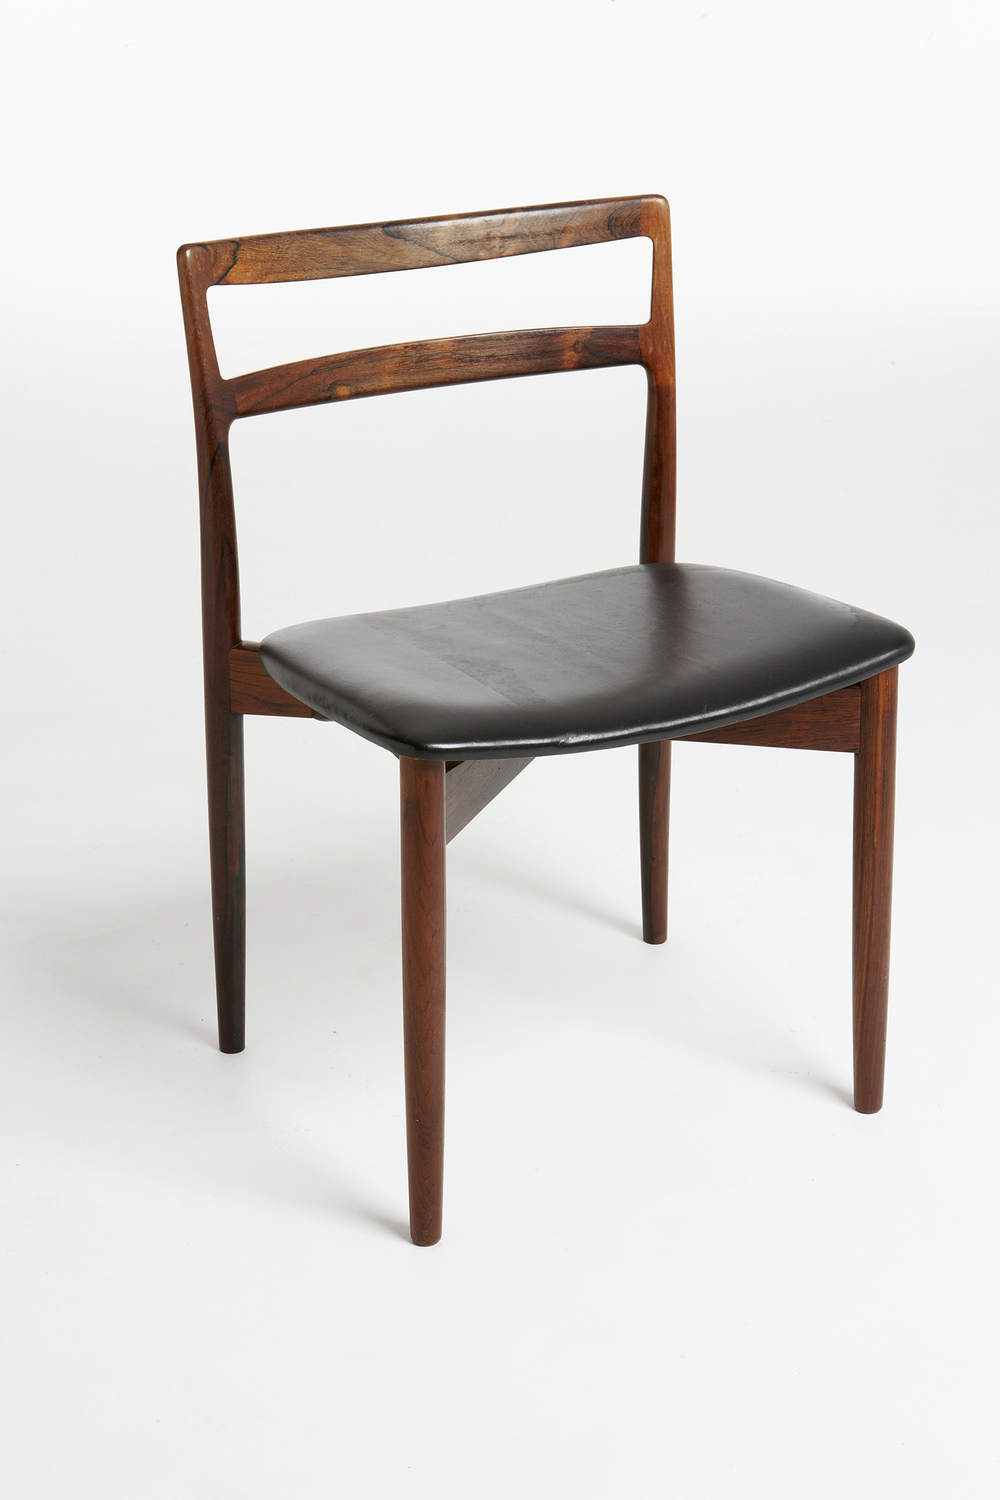 H Ostergaard 1960 Dining Chair   • made 1960-69     •